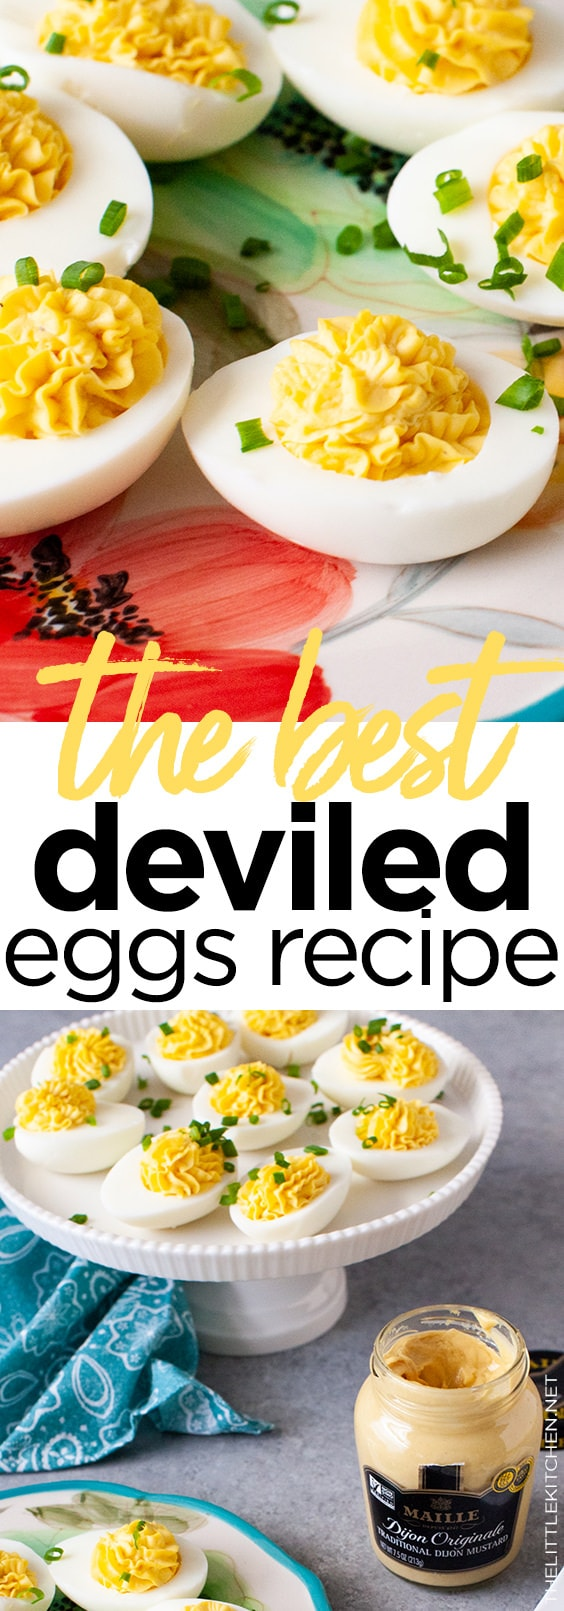 Deviled Eggs Recipe from thelittlekitchen.net